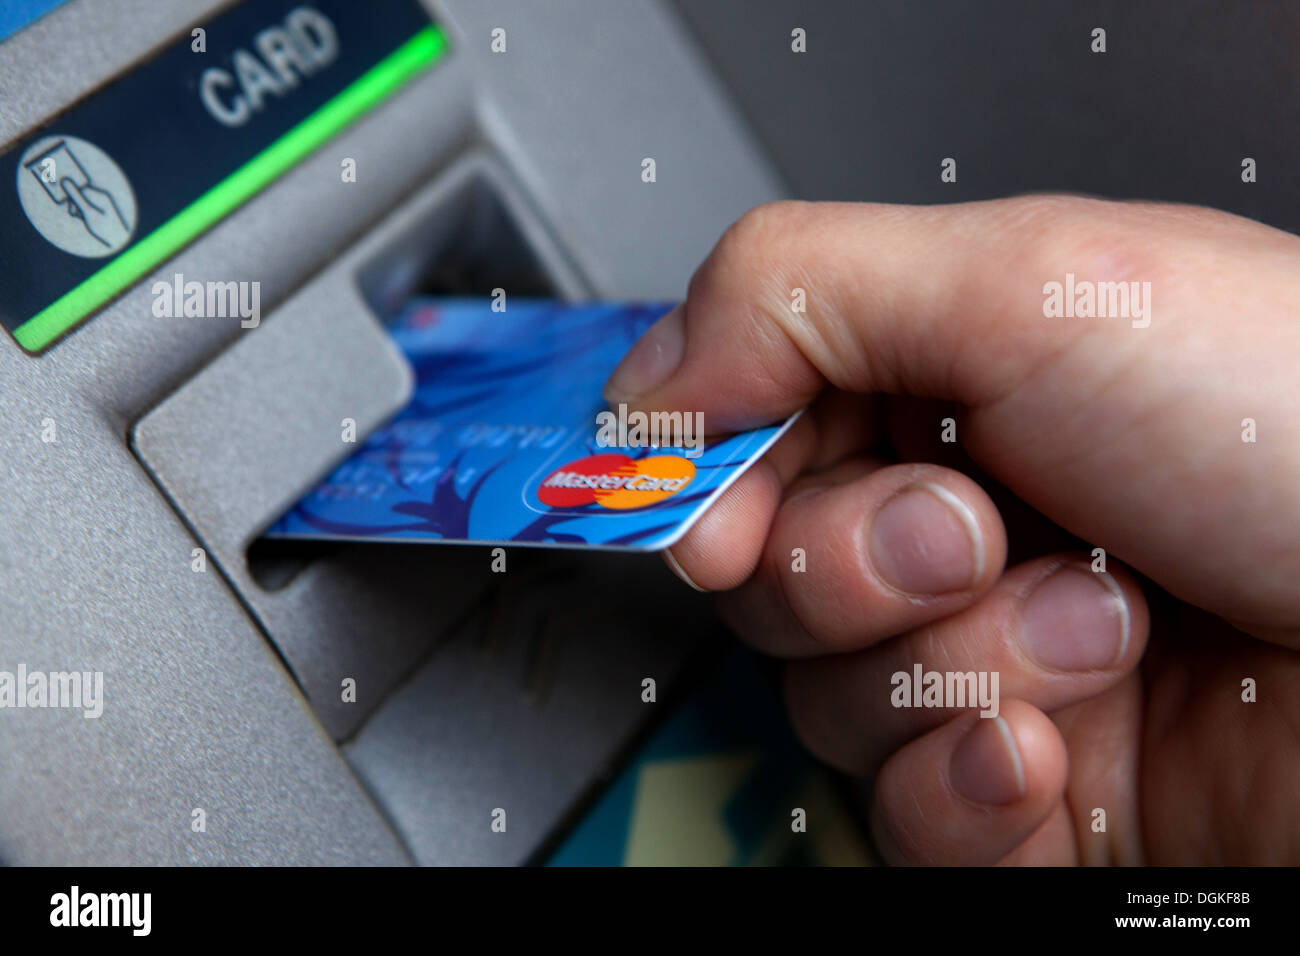 personification essay examples lighting inserting the bank card into an atm machine to draw cash money